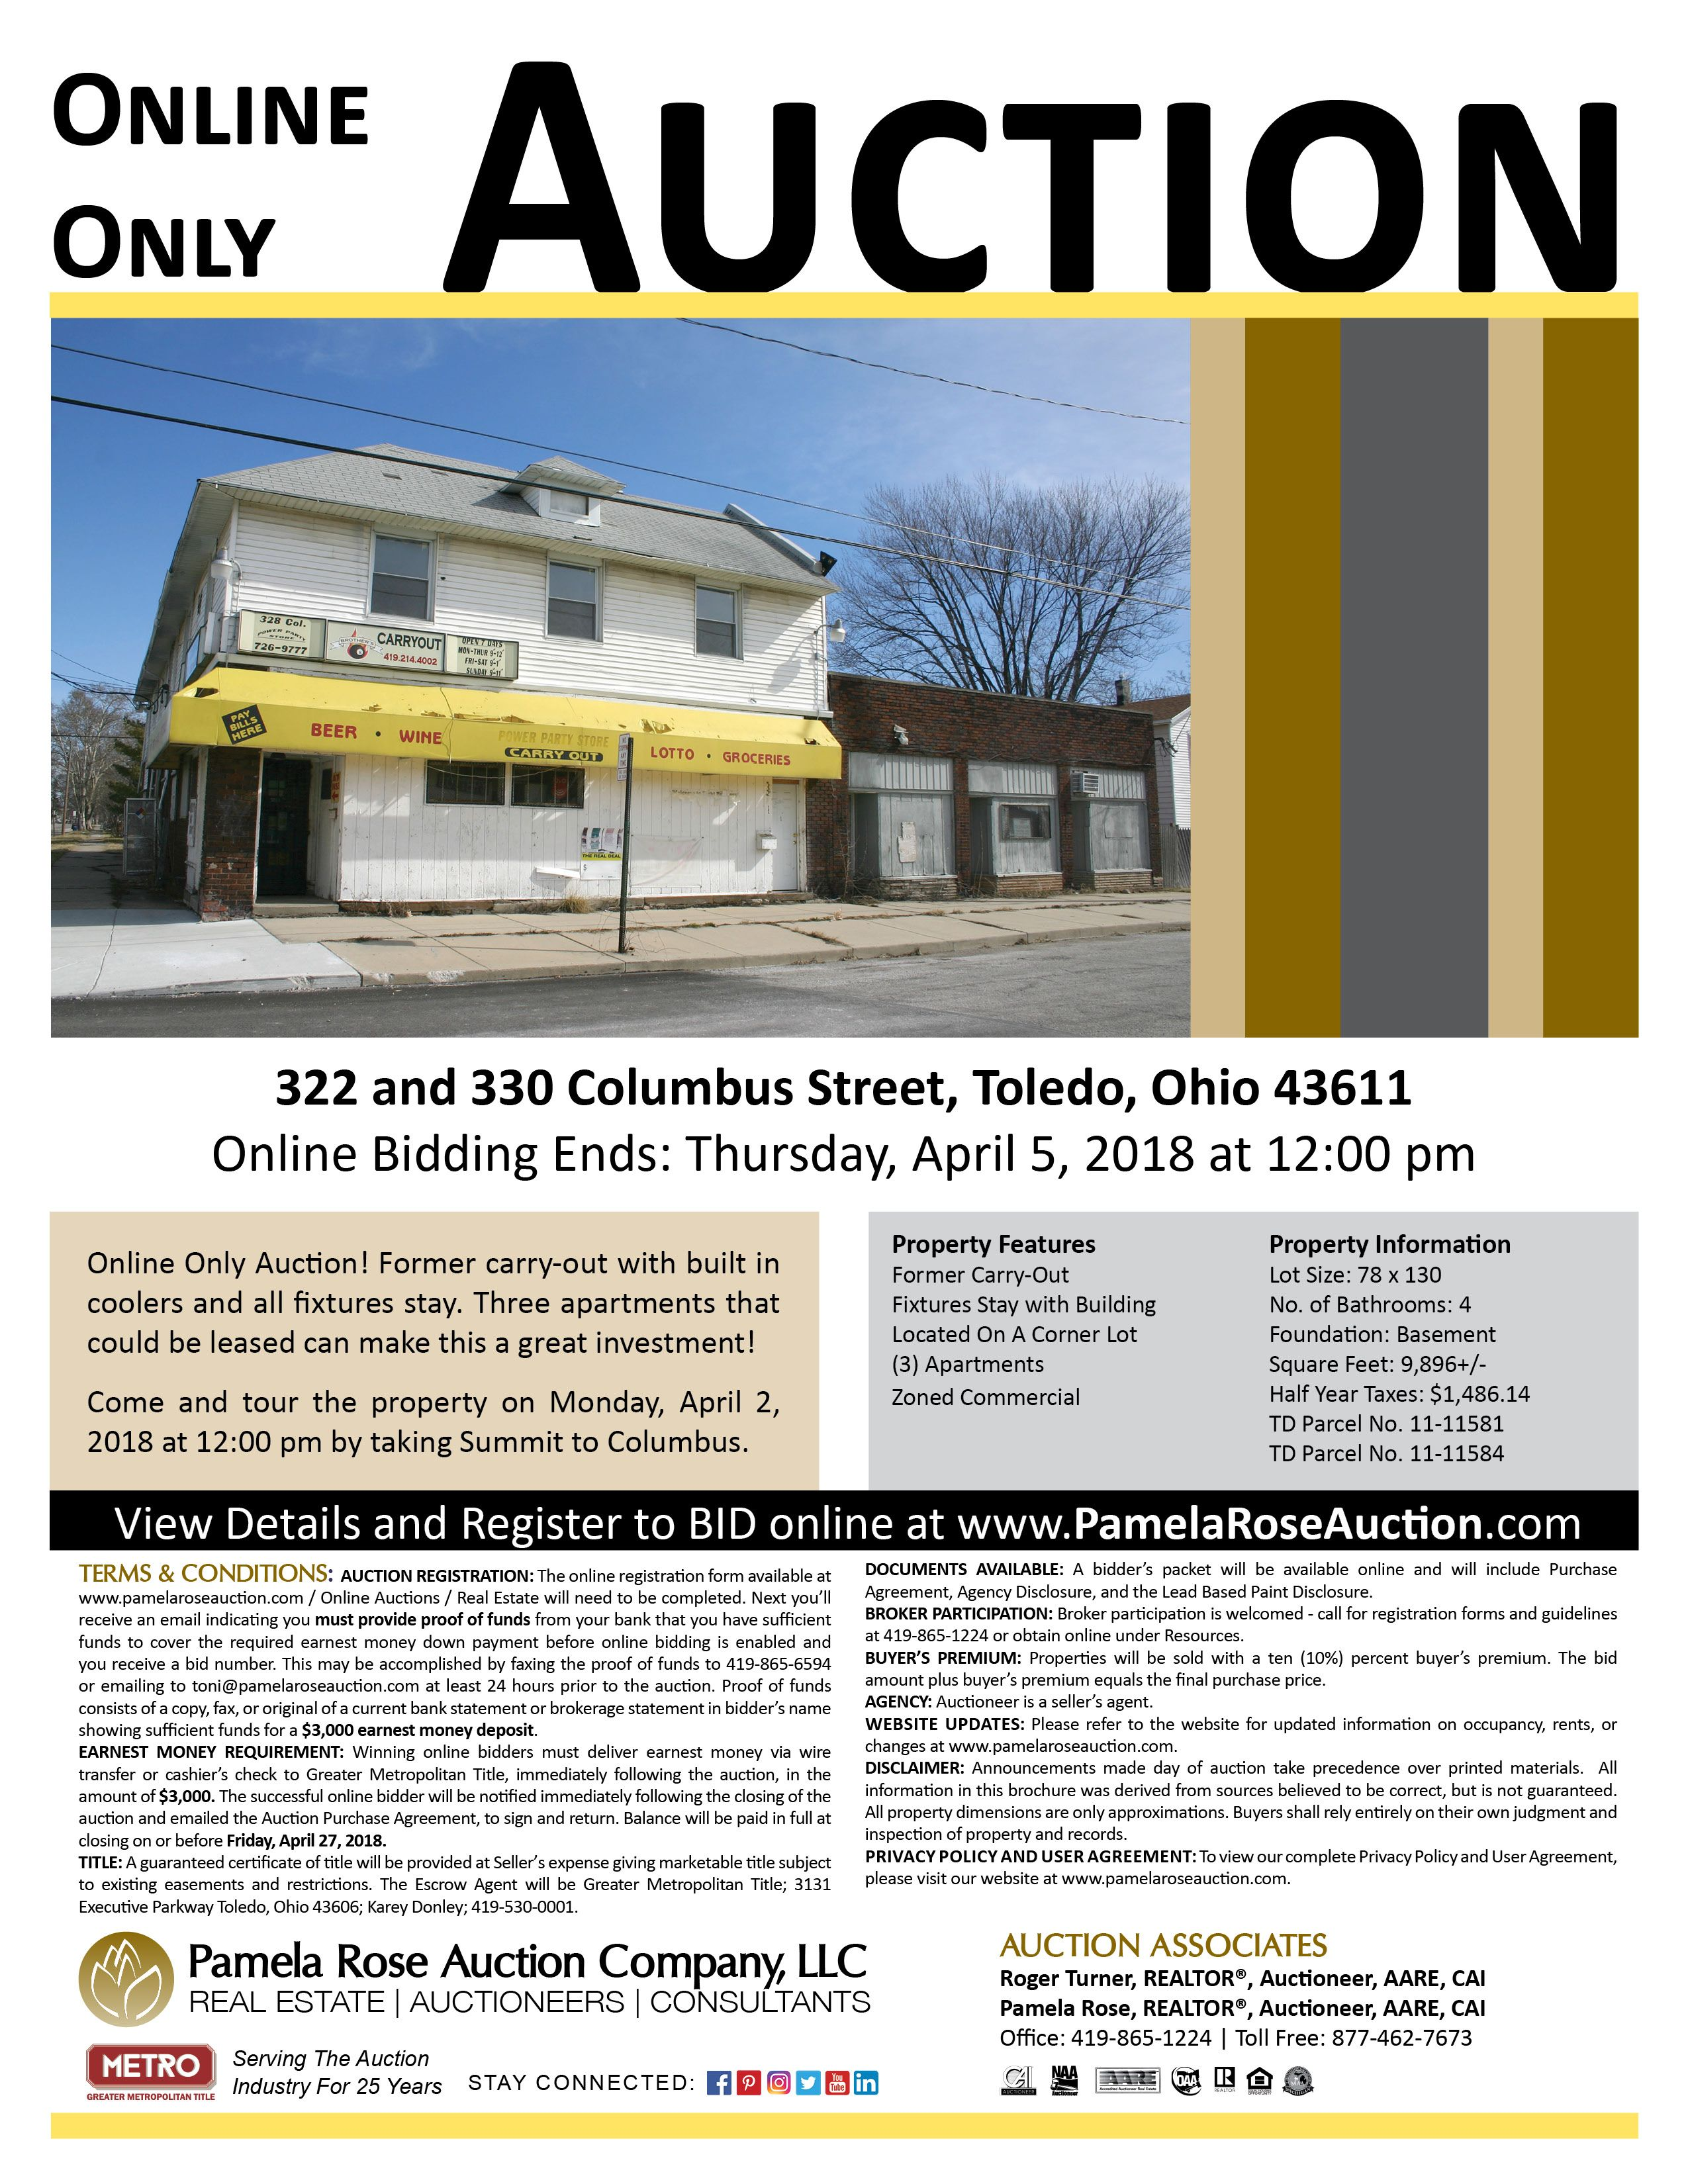 Retail Commercial Building In Toledo Online Only Auction 322 And 330 Columbus Street Toledo Ohio 43611 Bidding Ends Commercial Property Auction Property